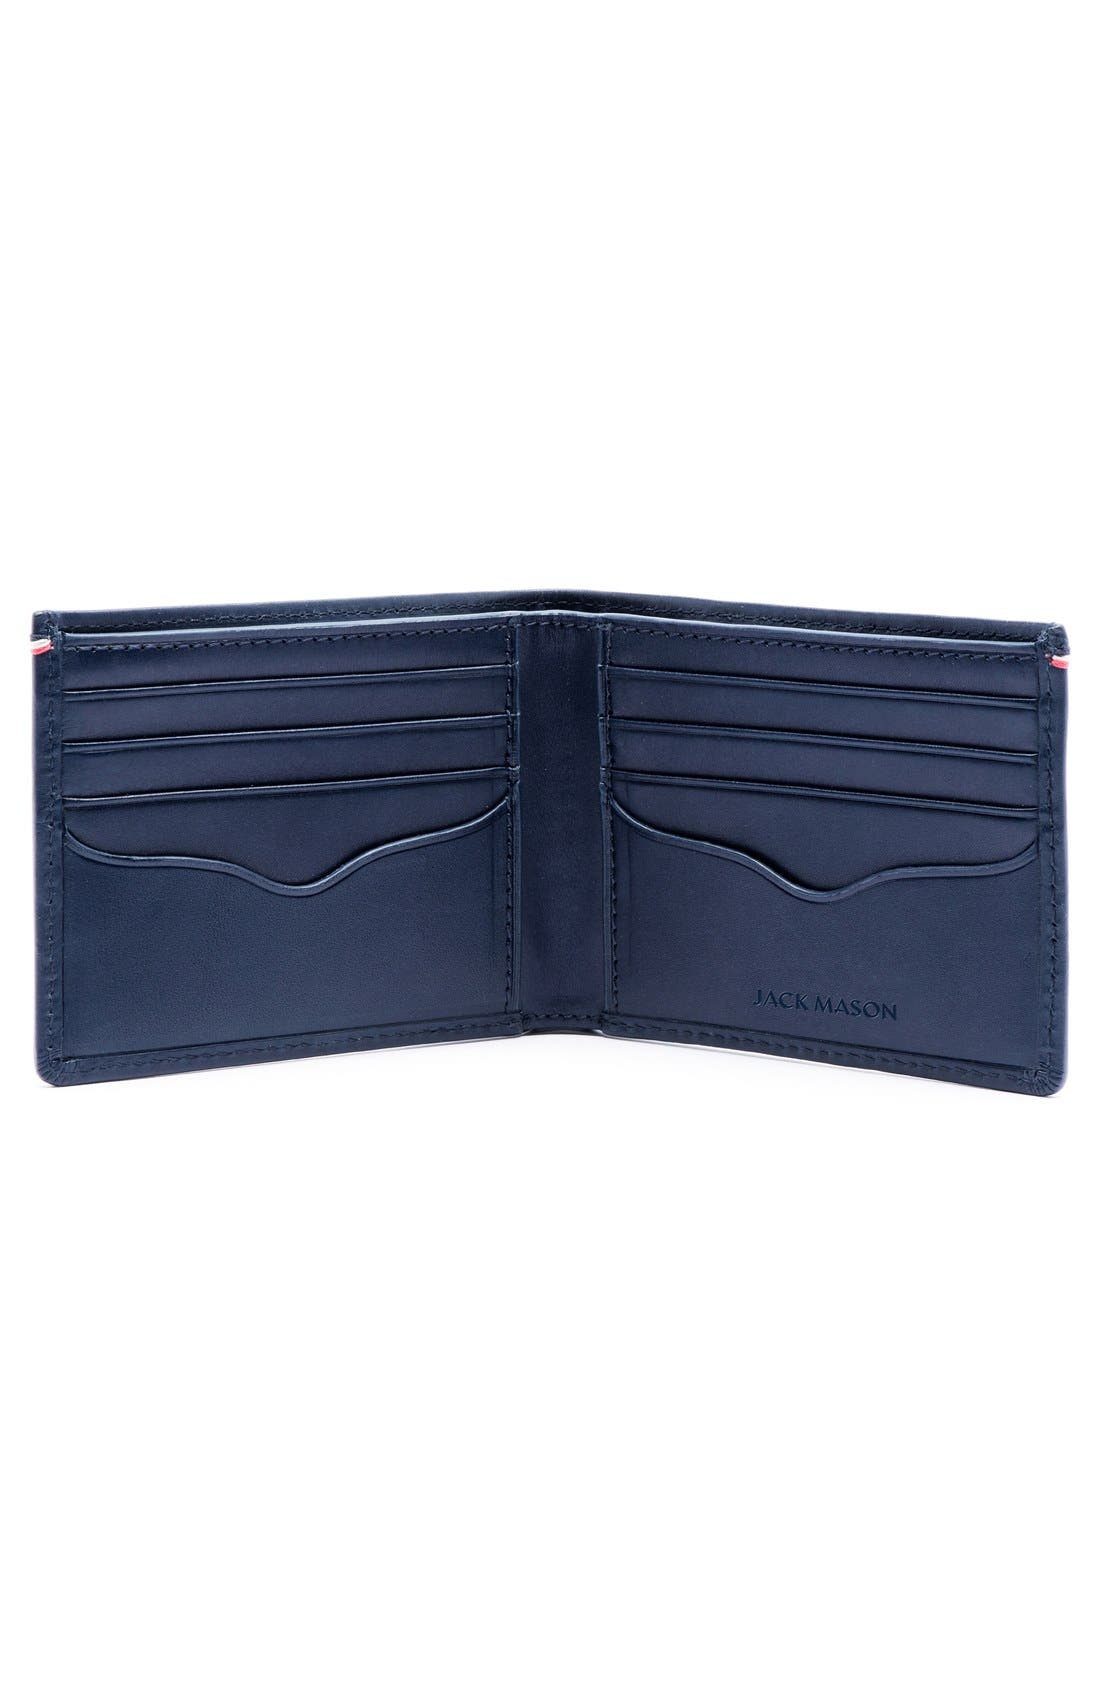 Star Leather Bifold Wallet,                             Alternate thumbnail 2, color,                             Navy